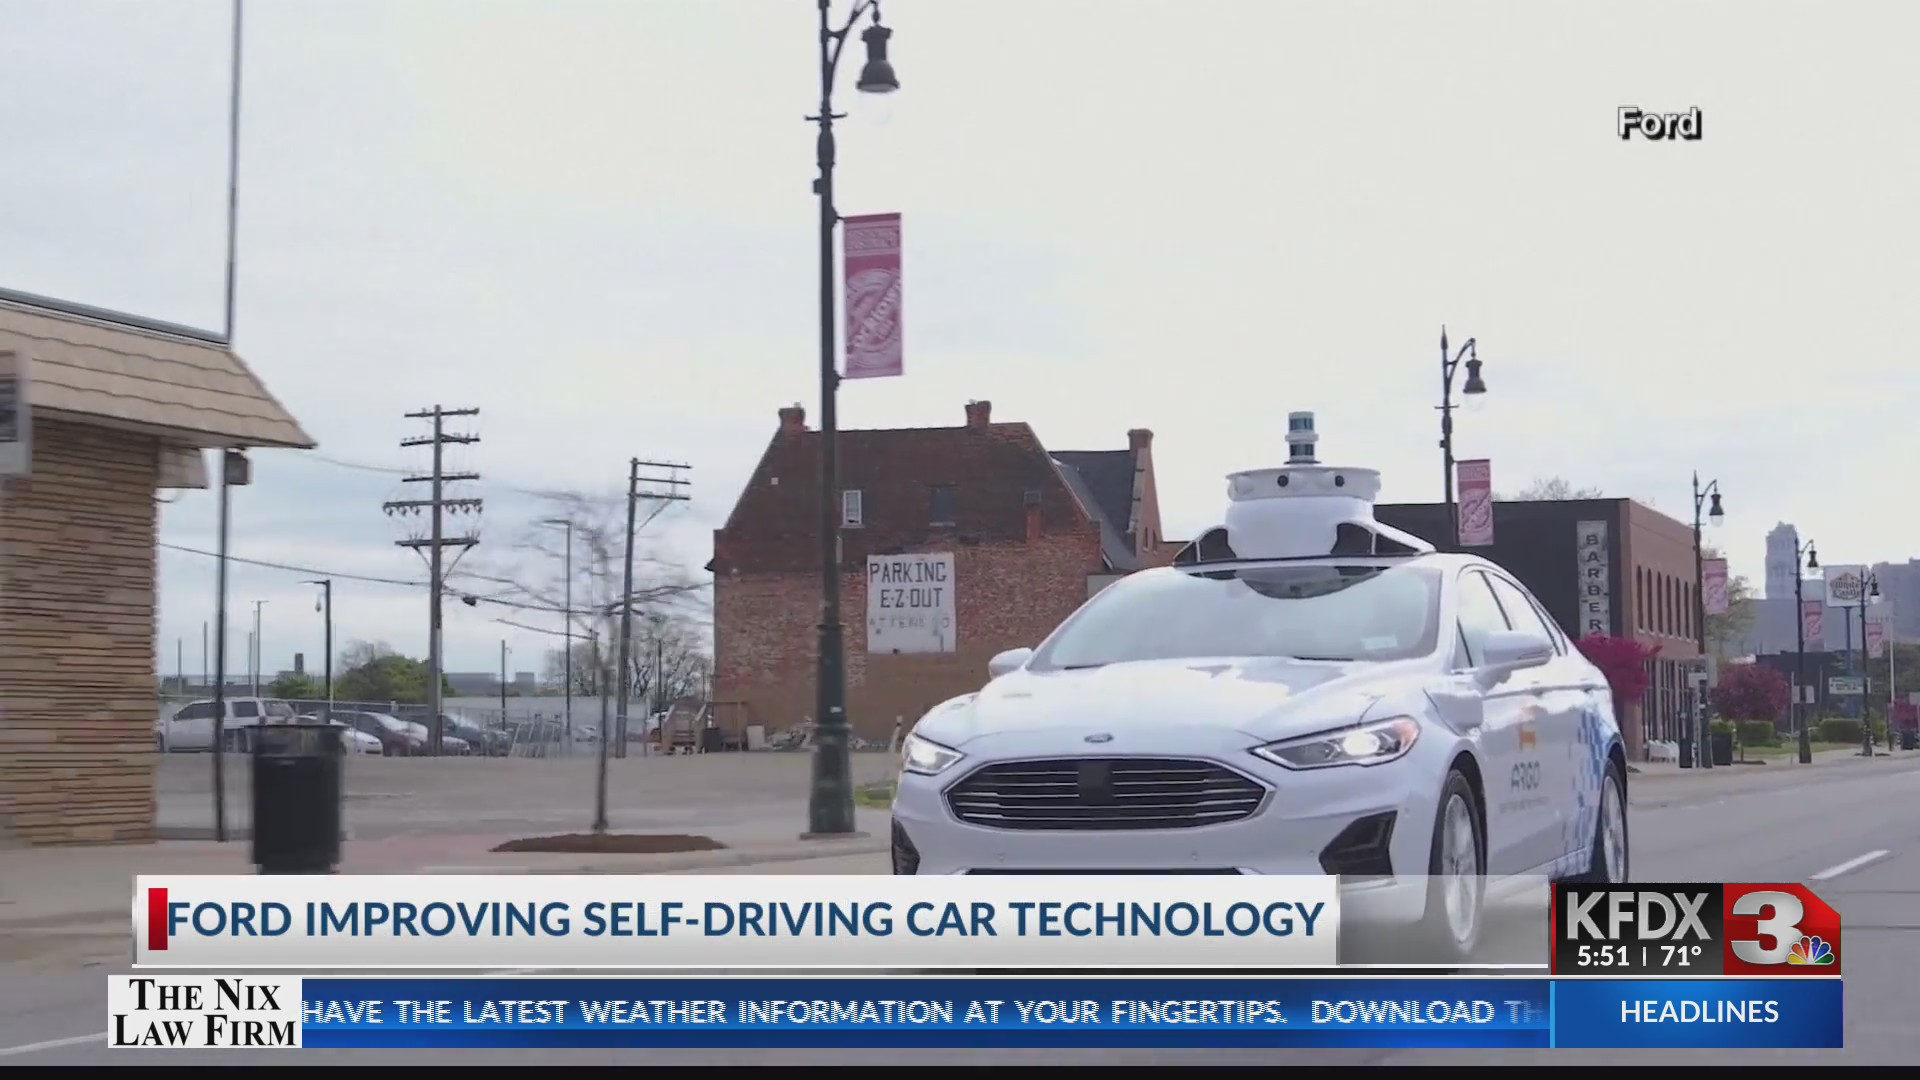 Ford improving self-driving car technology